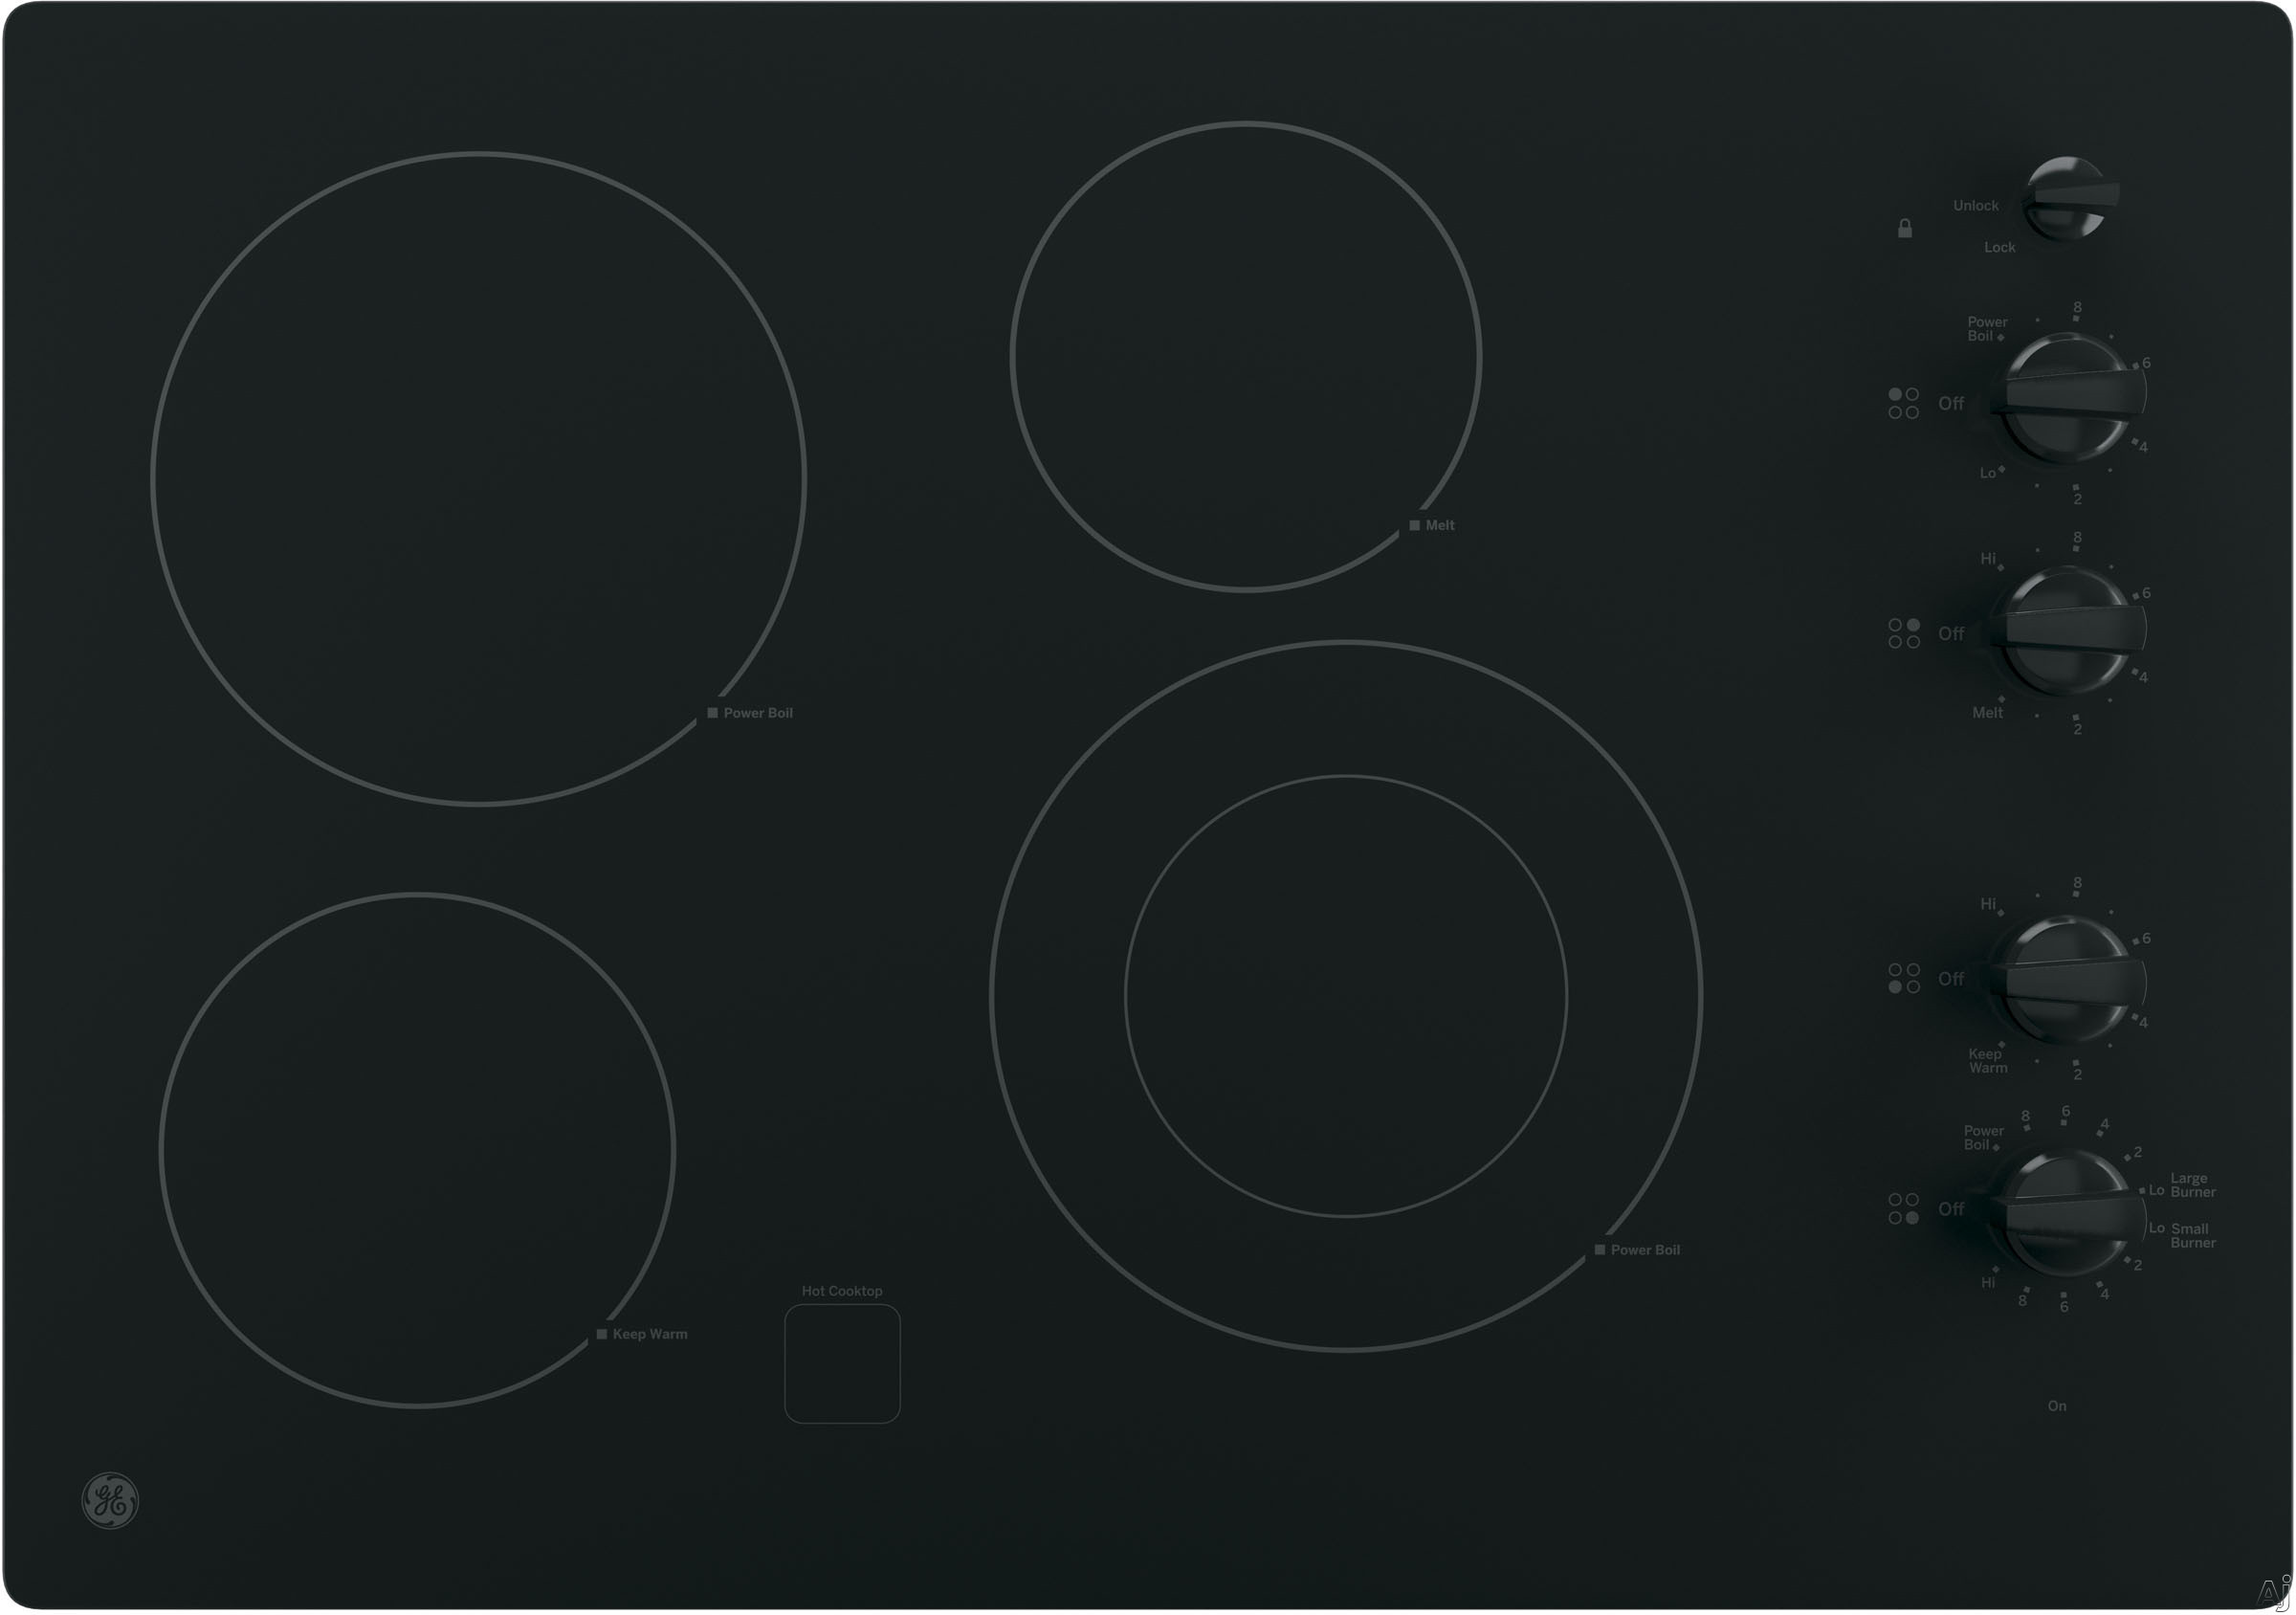 GE JP3530DJBB 30 Inch Smoothtop Electric Cooktop with 4 Radiant Elements, Front-Right Dual-Size Power Burner, Knob Controls, Keep Warm Setting, Melt Setting, GE Fits! Guarantee and ADA Compliant: Blac